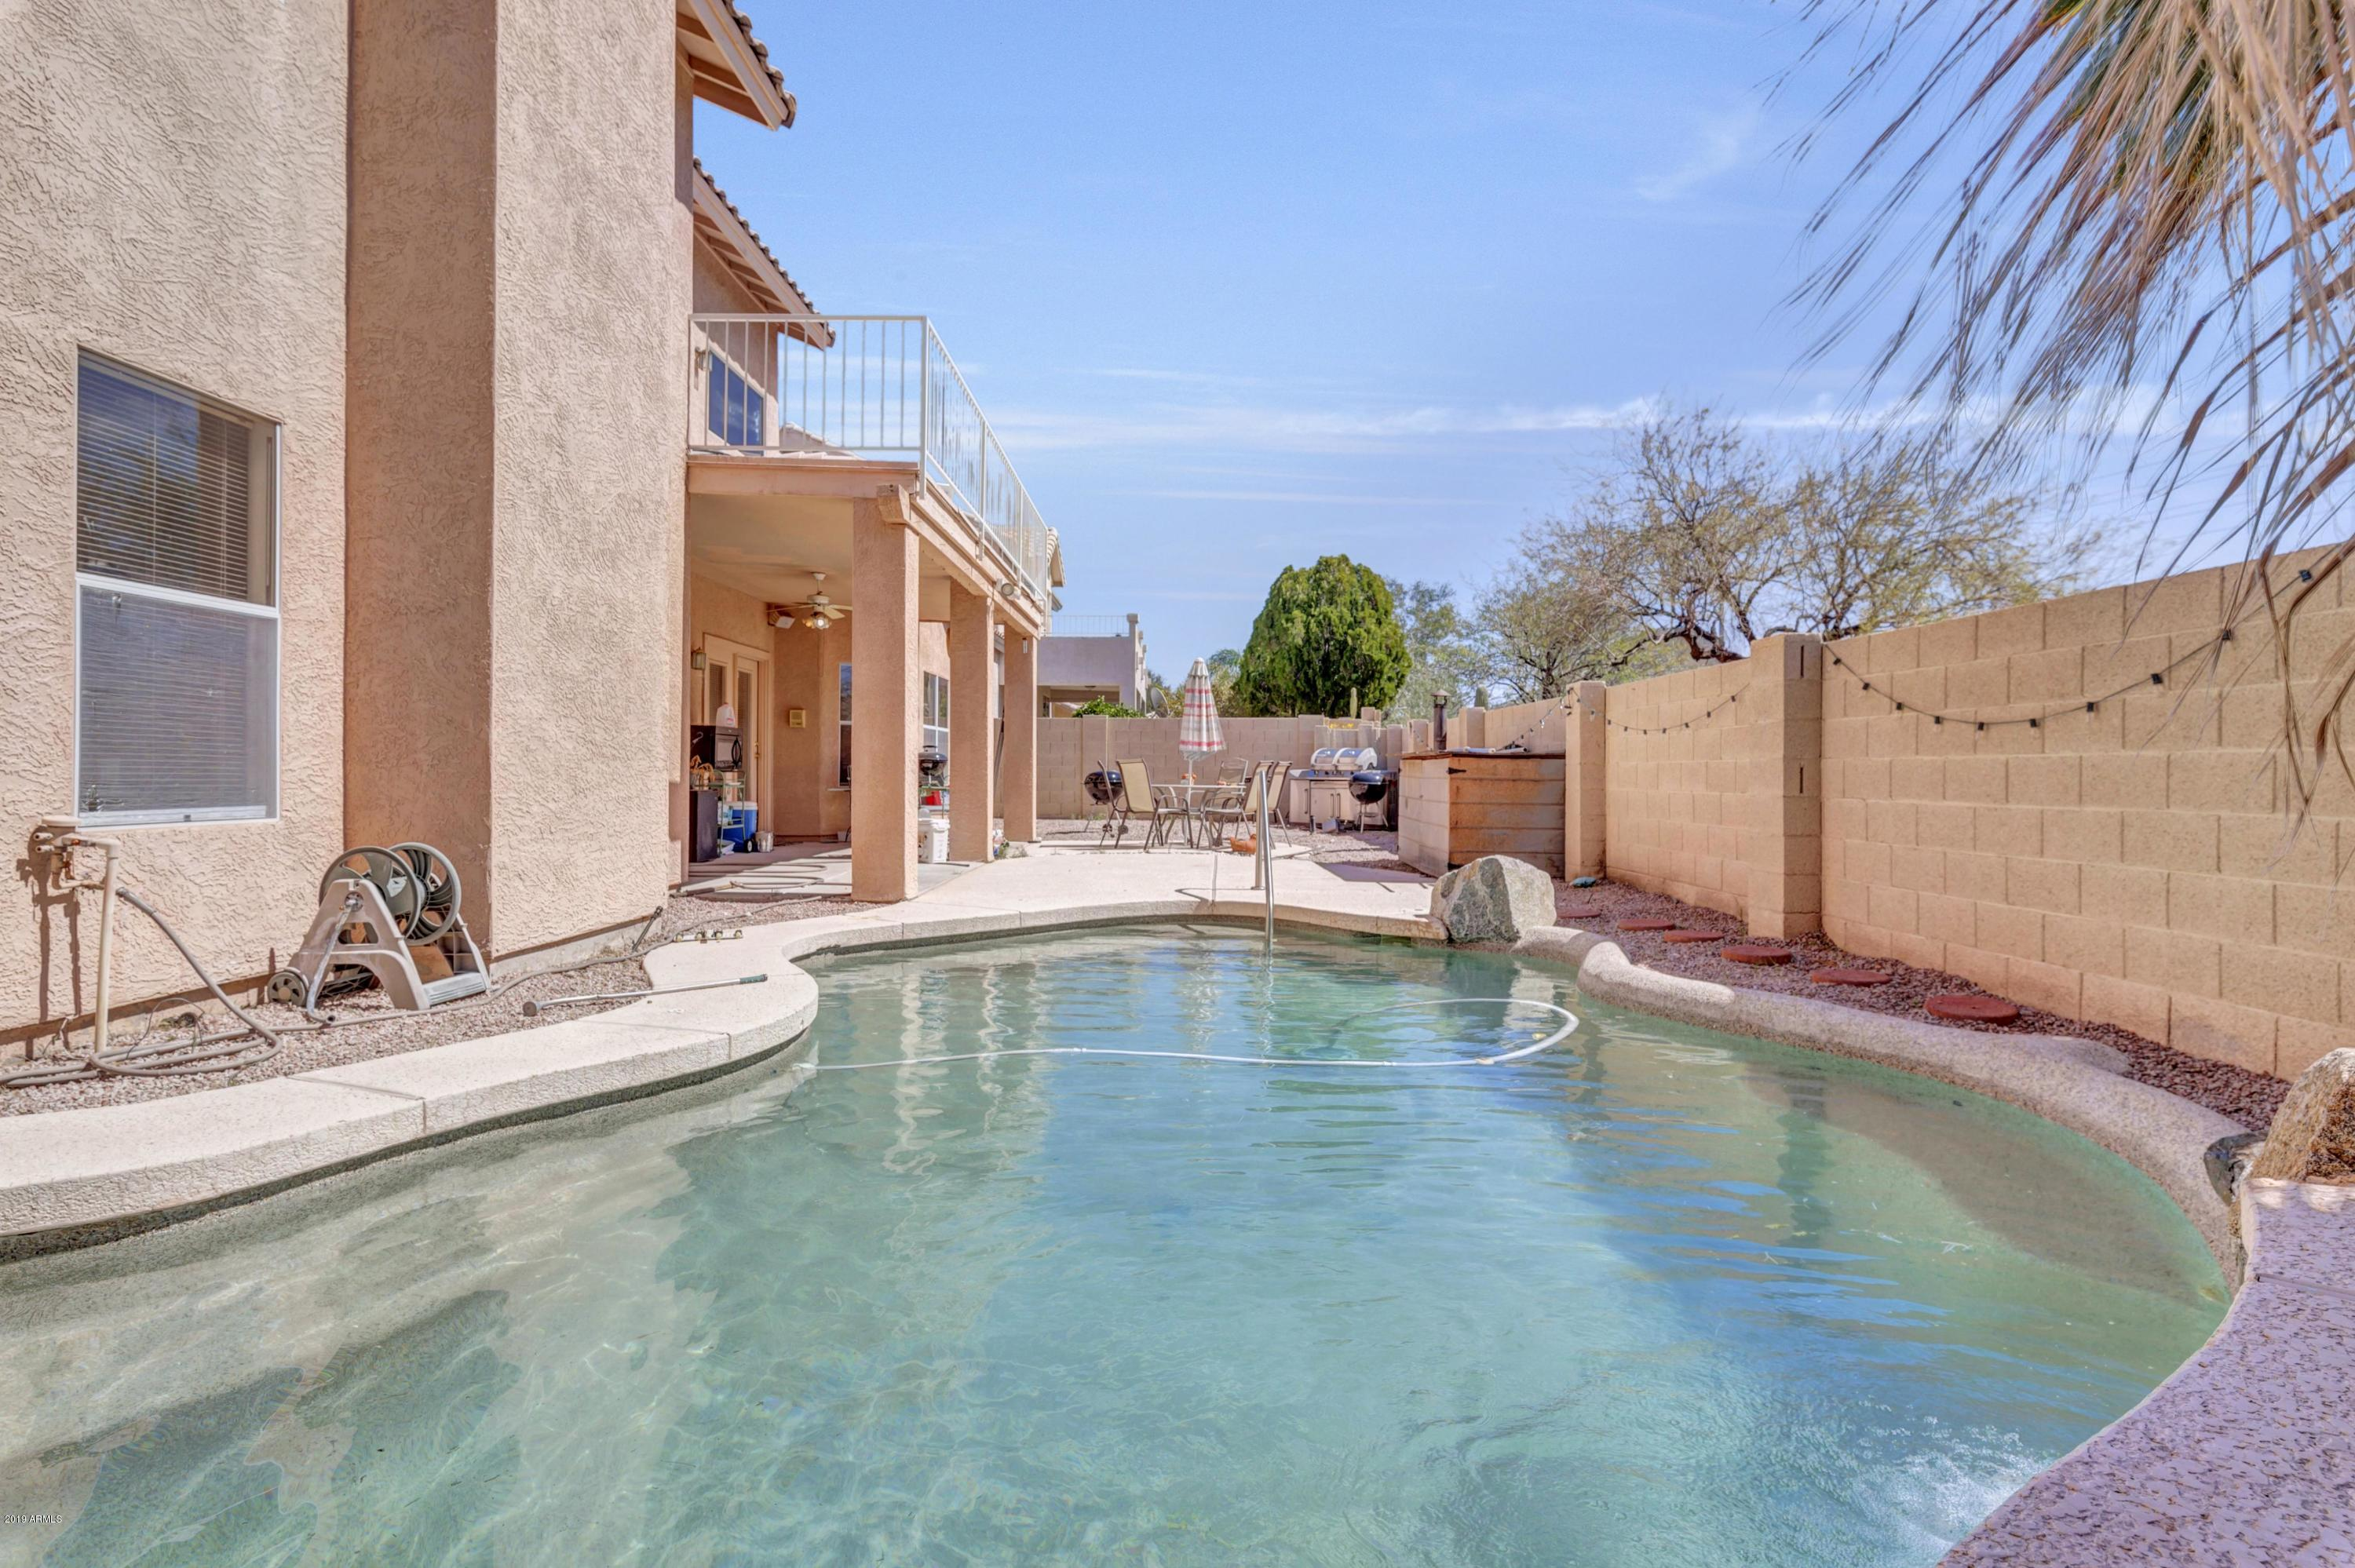 MLS 5896177 12871 E BECKER Lane, Scottsdale, AZ 85259 Scottsdale AZ Private Pool